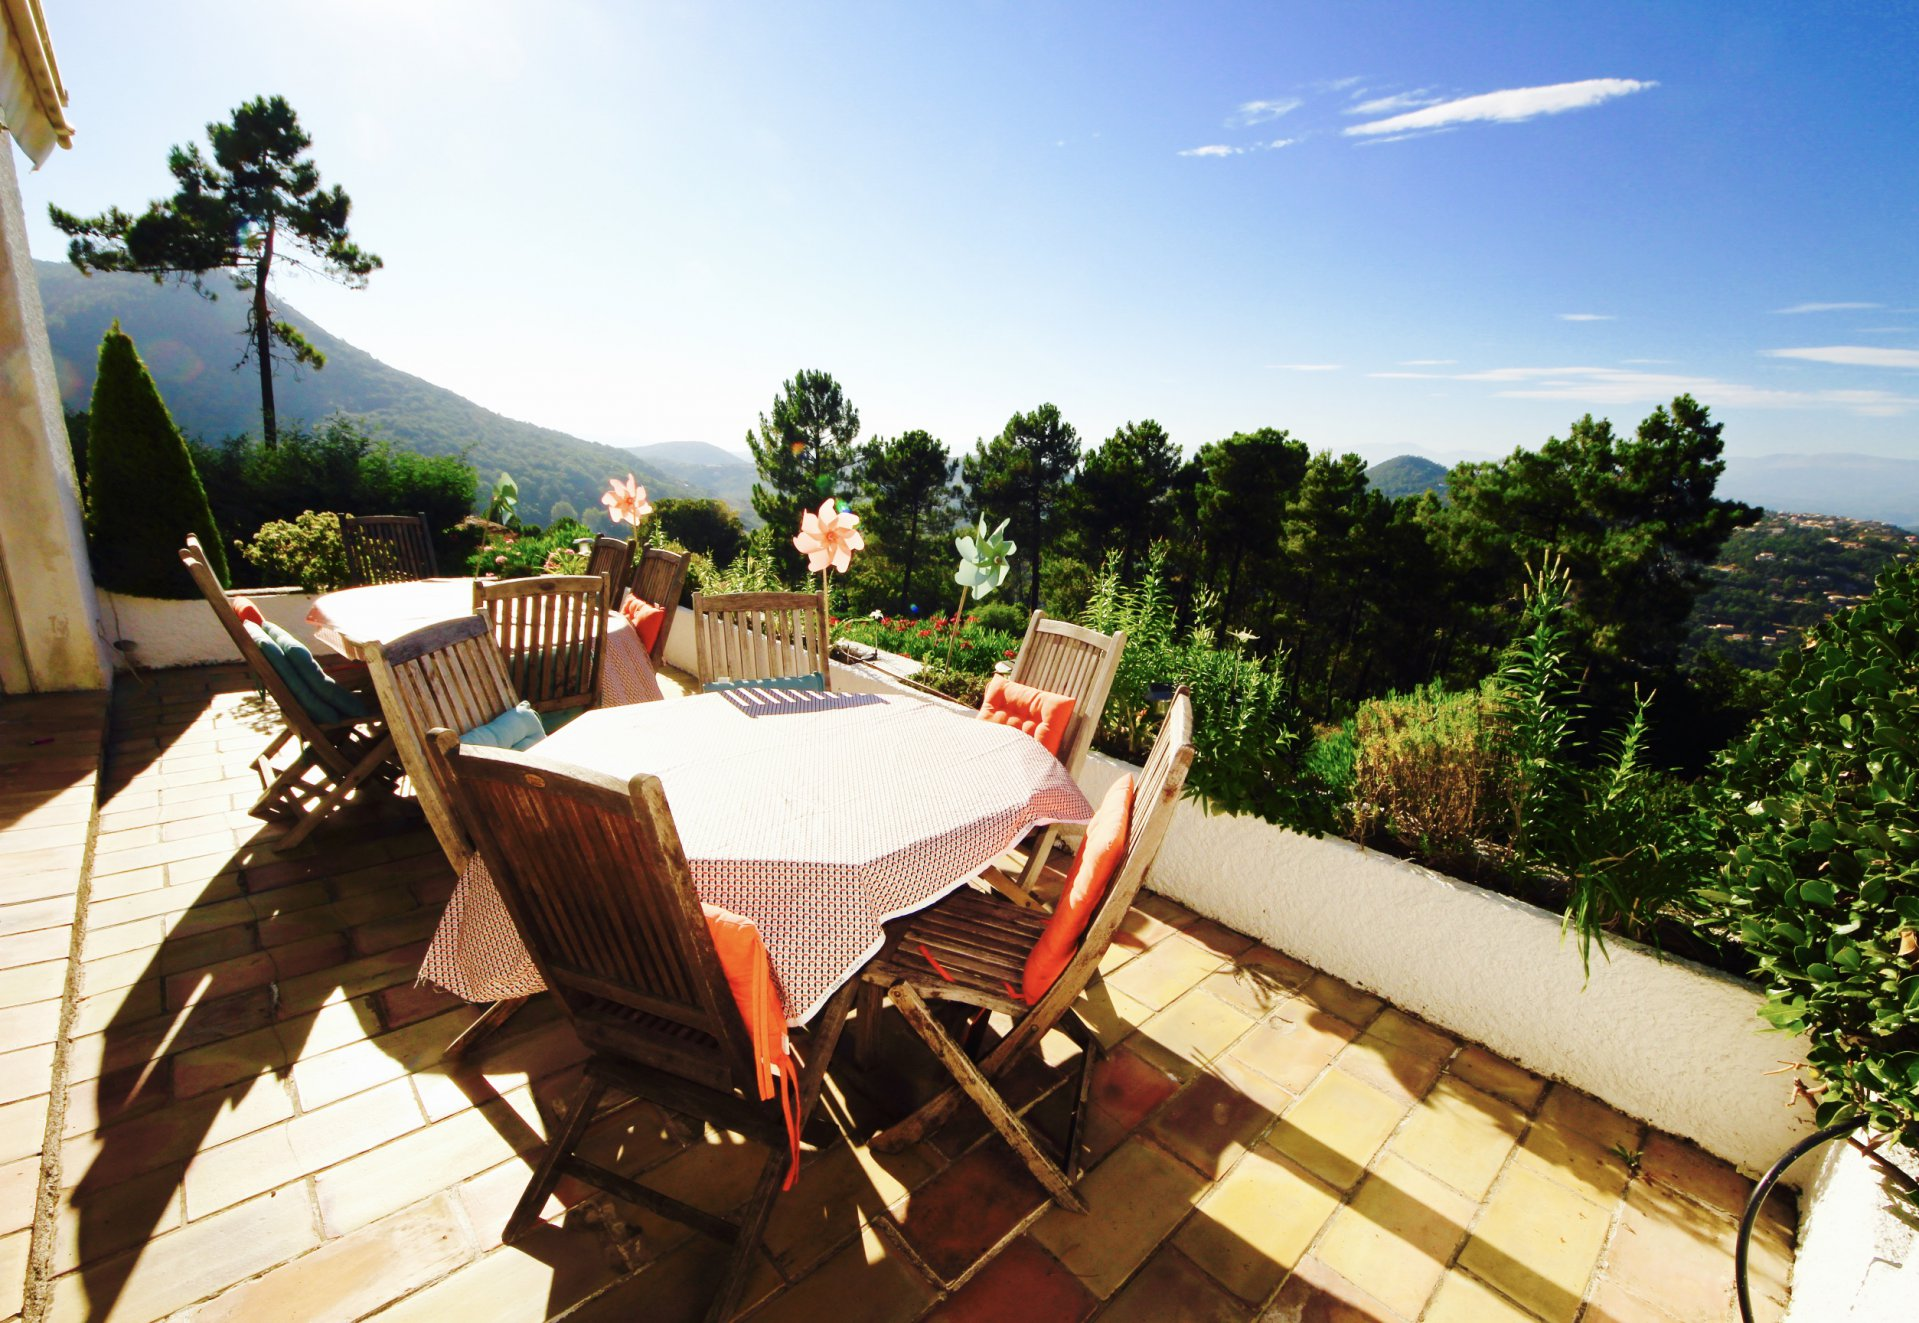 Fréjus - Les  Adrets : Beautifull views on nature fot this architect's villa of 257 sqm